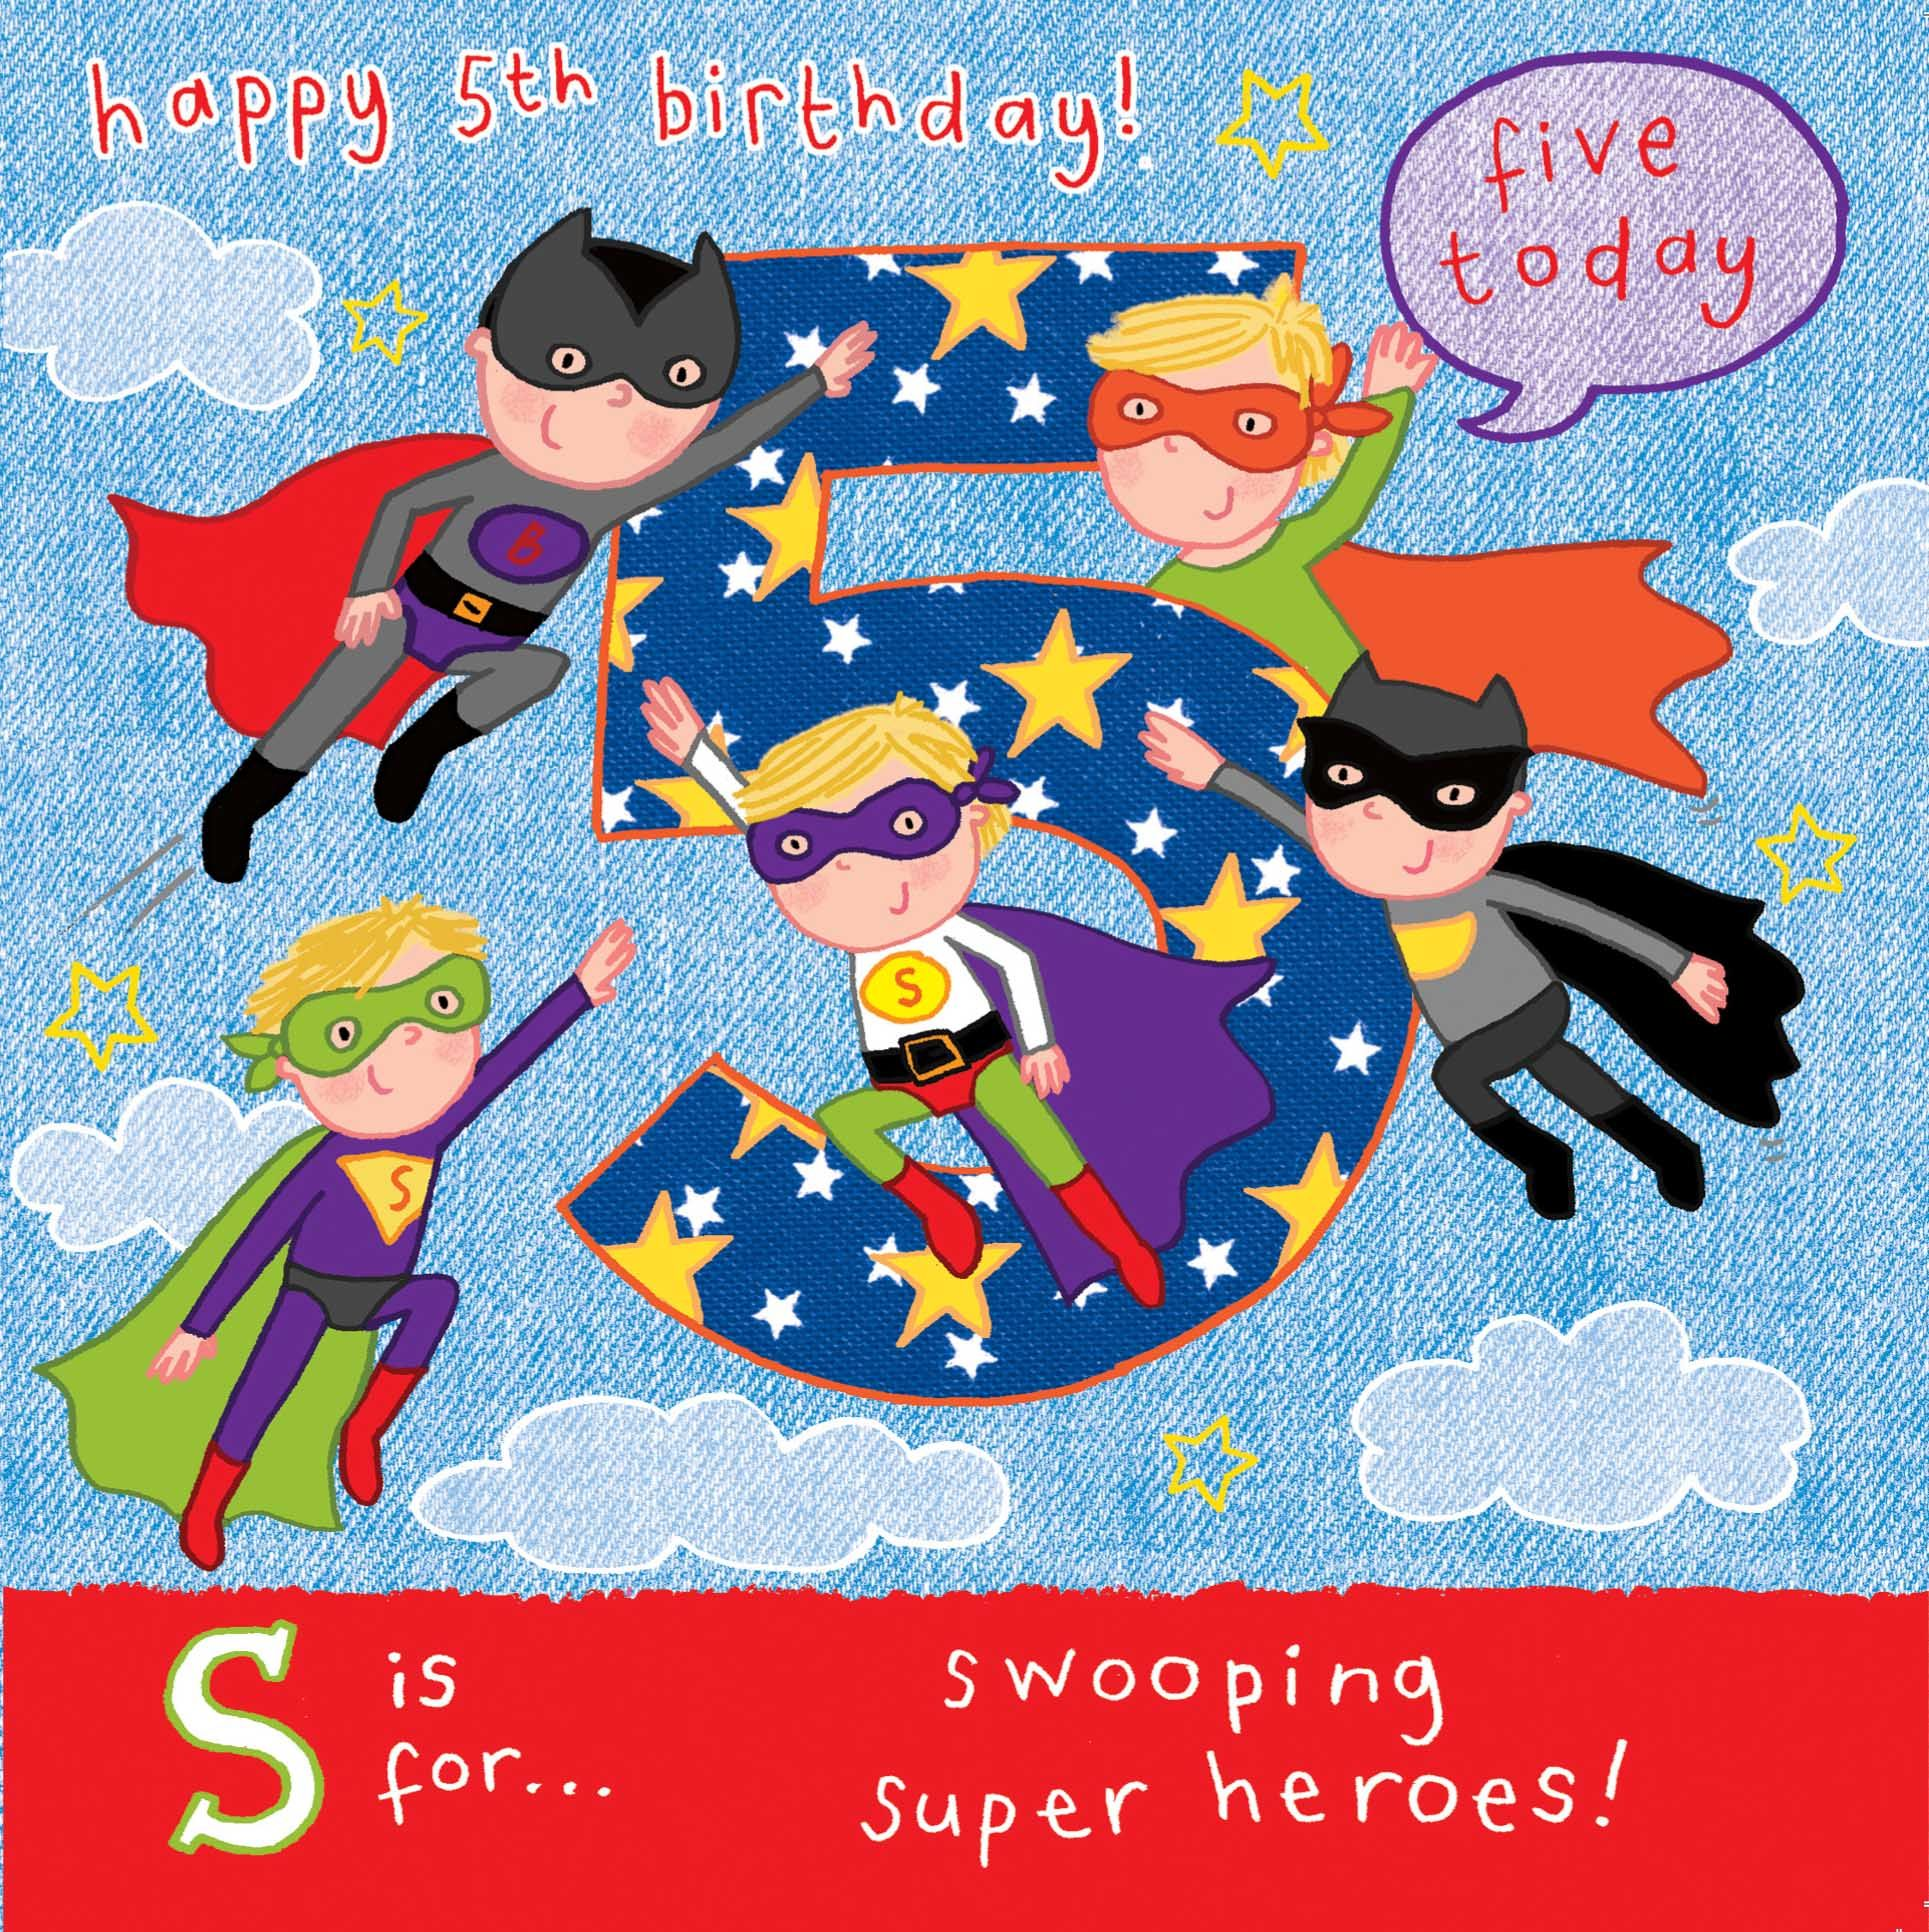 AGE 5 Boys Birthday Card Superheroes TW061